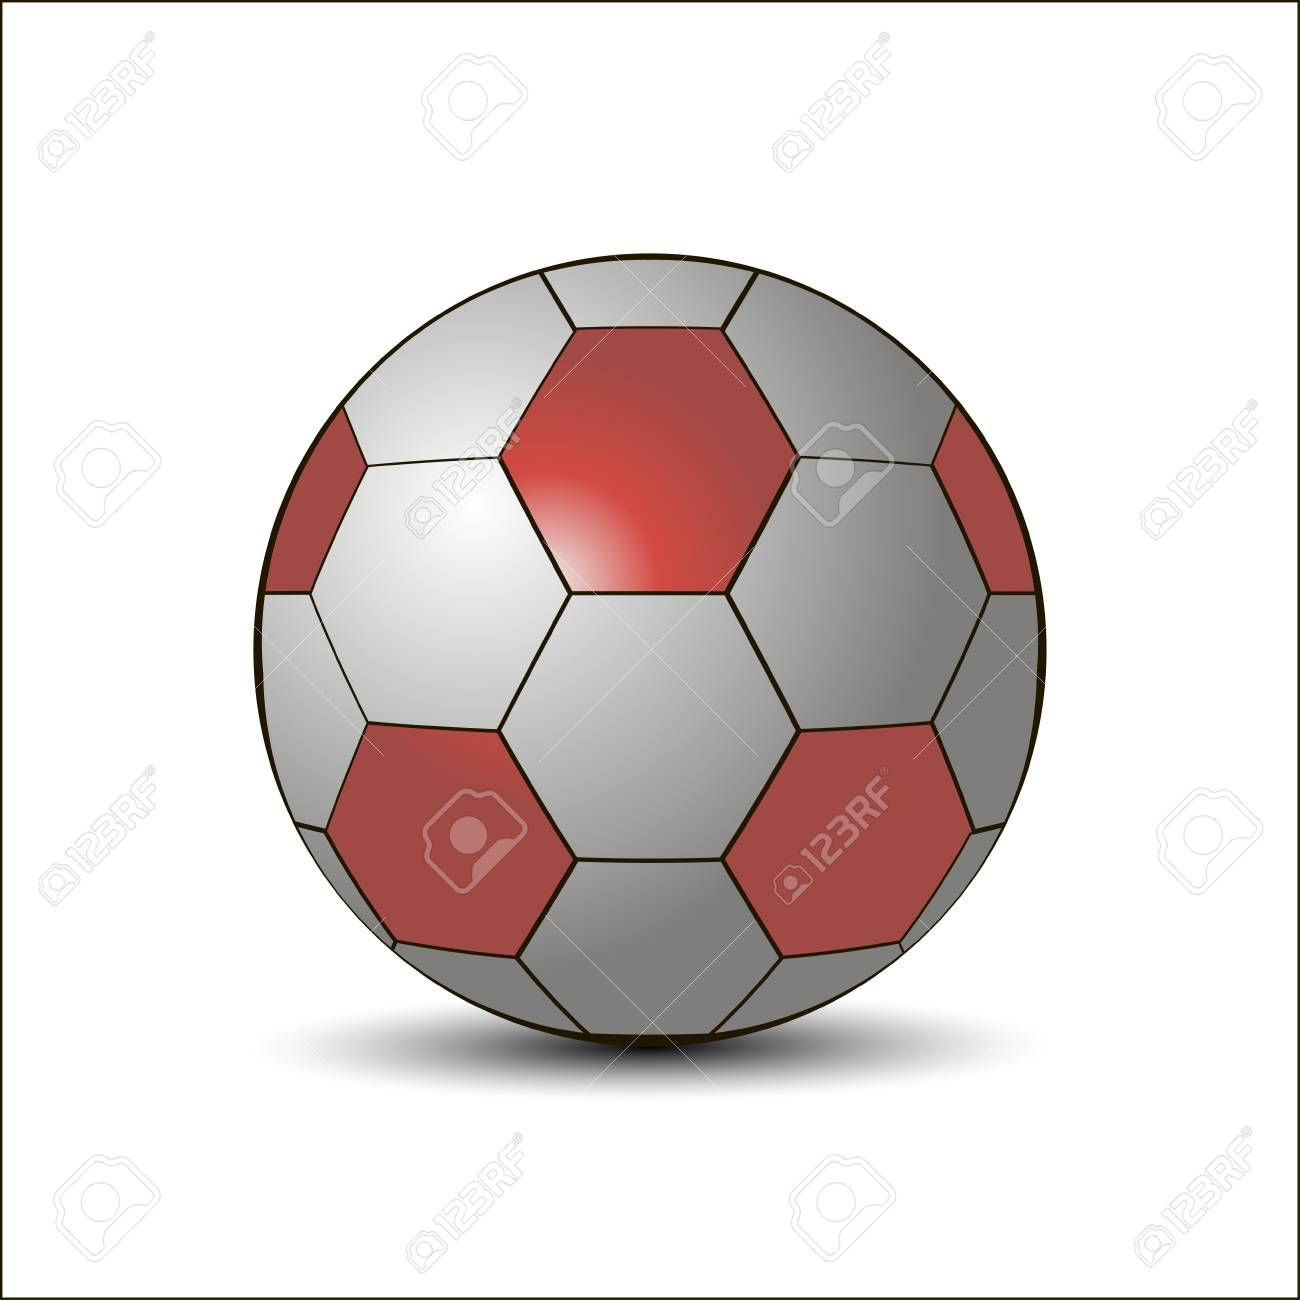 1300x1300 Illustration For The Theme Of A Flying Soccer Ball.isolated